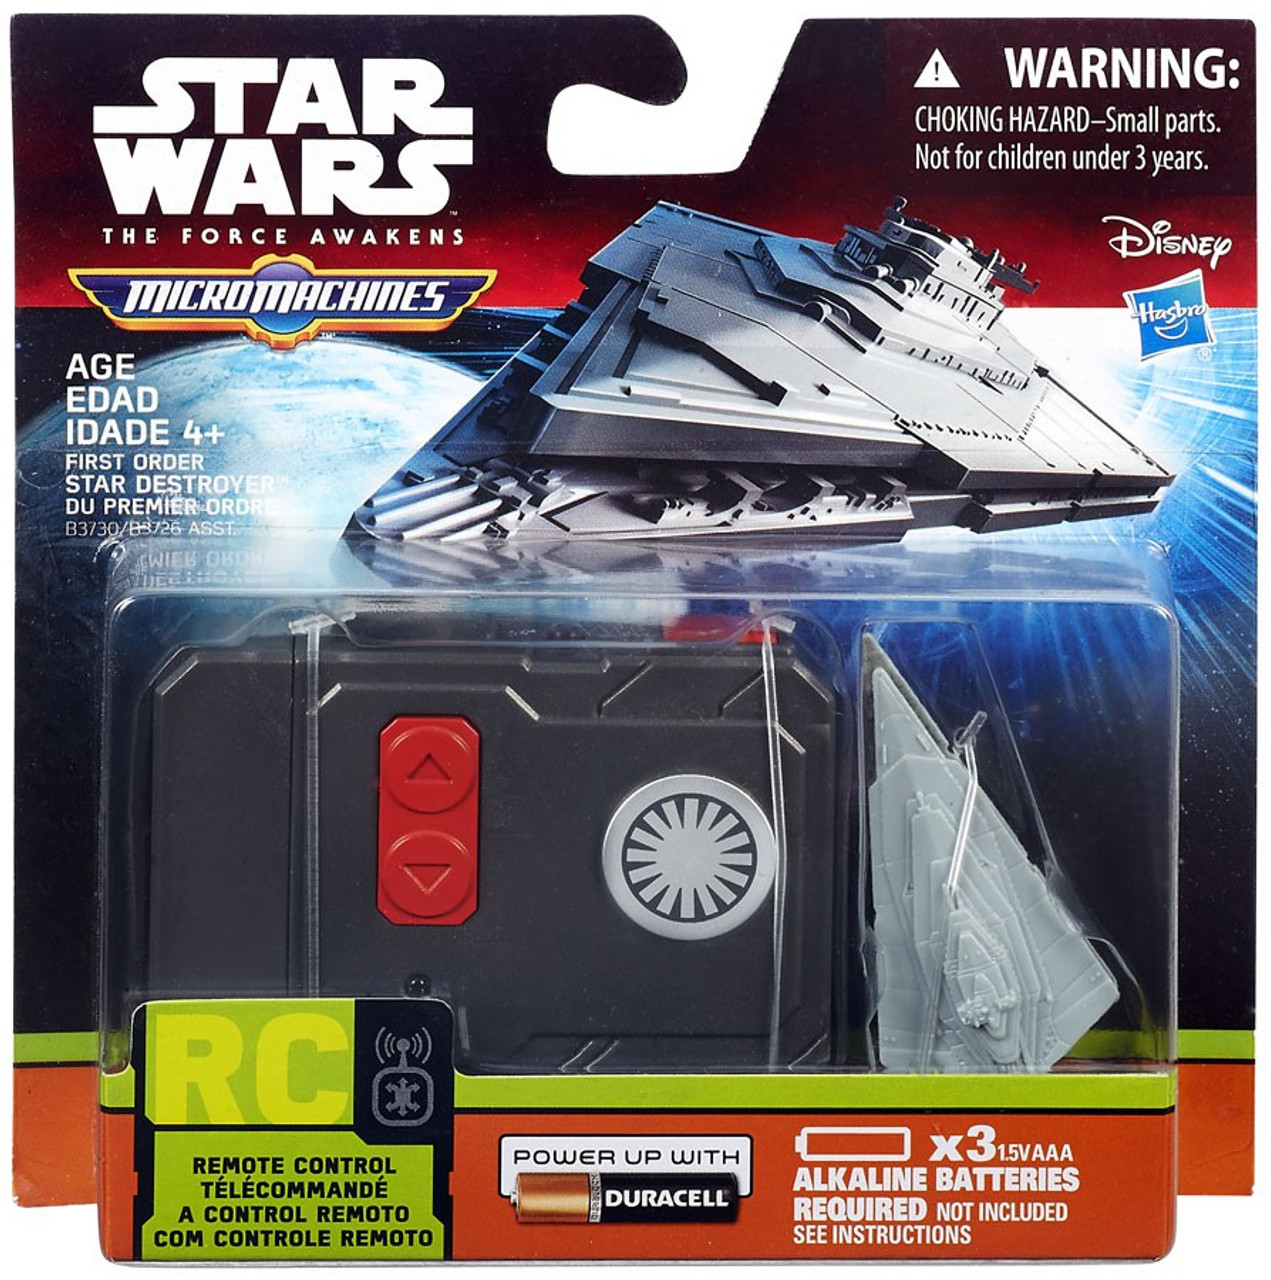 THE FORCE AWAKENS STAR WARS MICRO MACHINES REMOTE CONTROL STAR DESTROYER